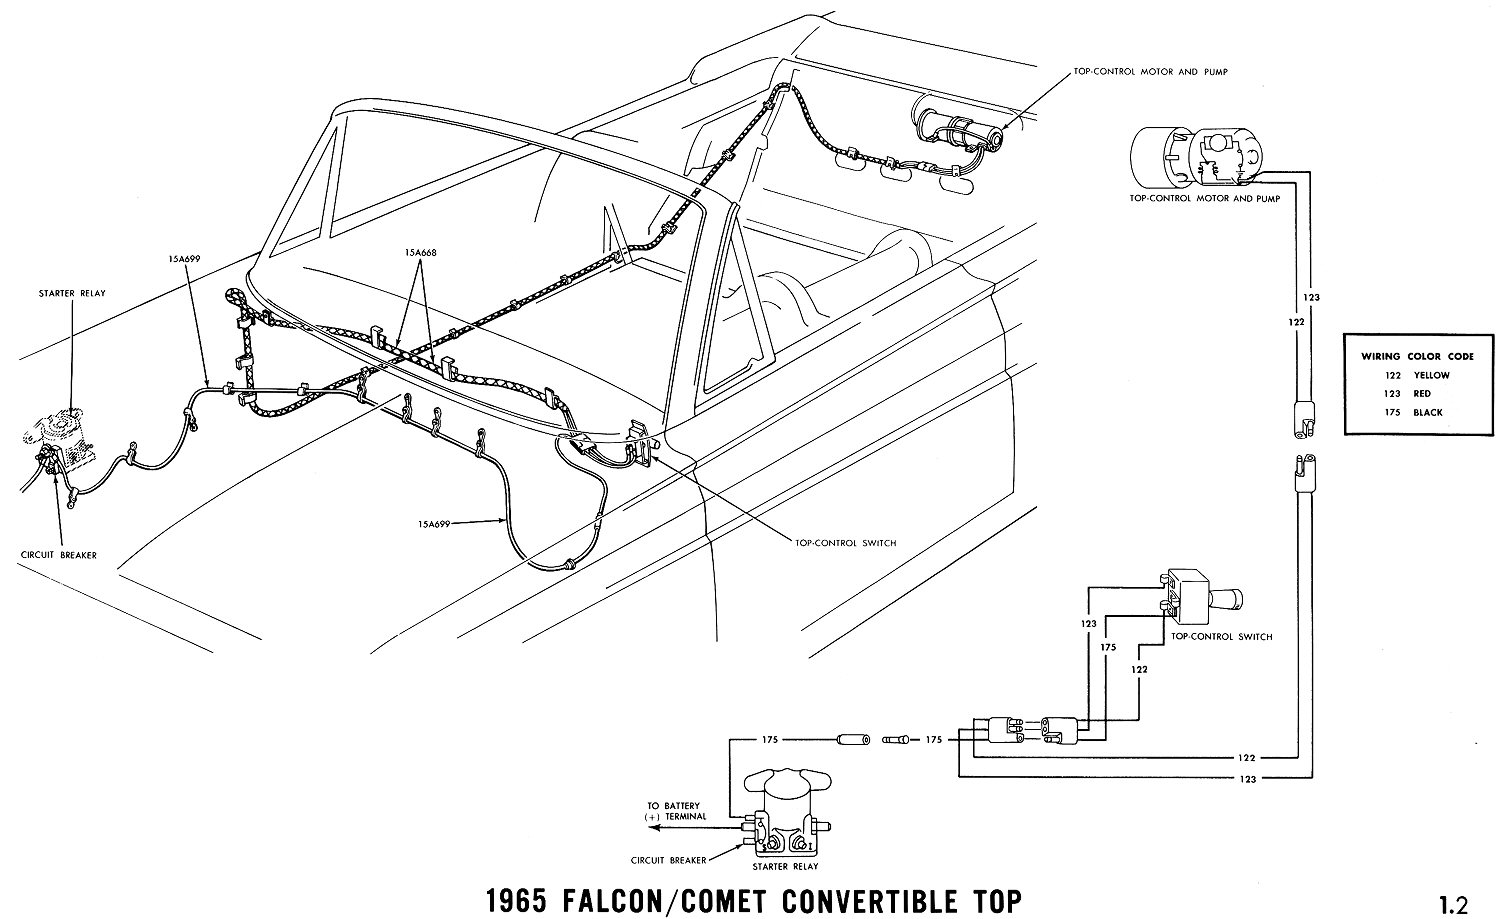 1965k Radio Wiring Diagram Ford Fairlane on thunderbird starter, mustang turn signal, turn signal switch, falcon turn signal switch, fairlane convertible, f100 turn signal, mustang headlight,